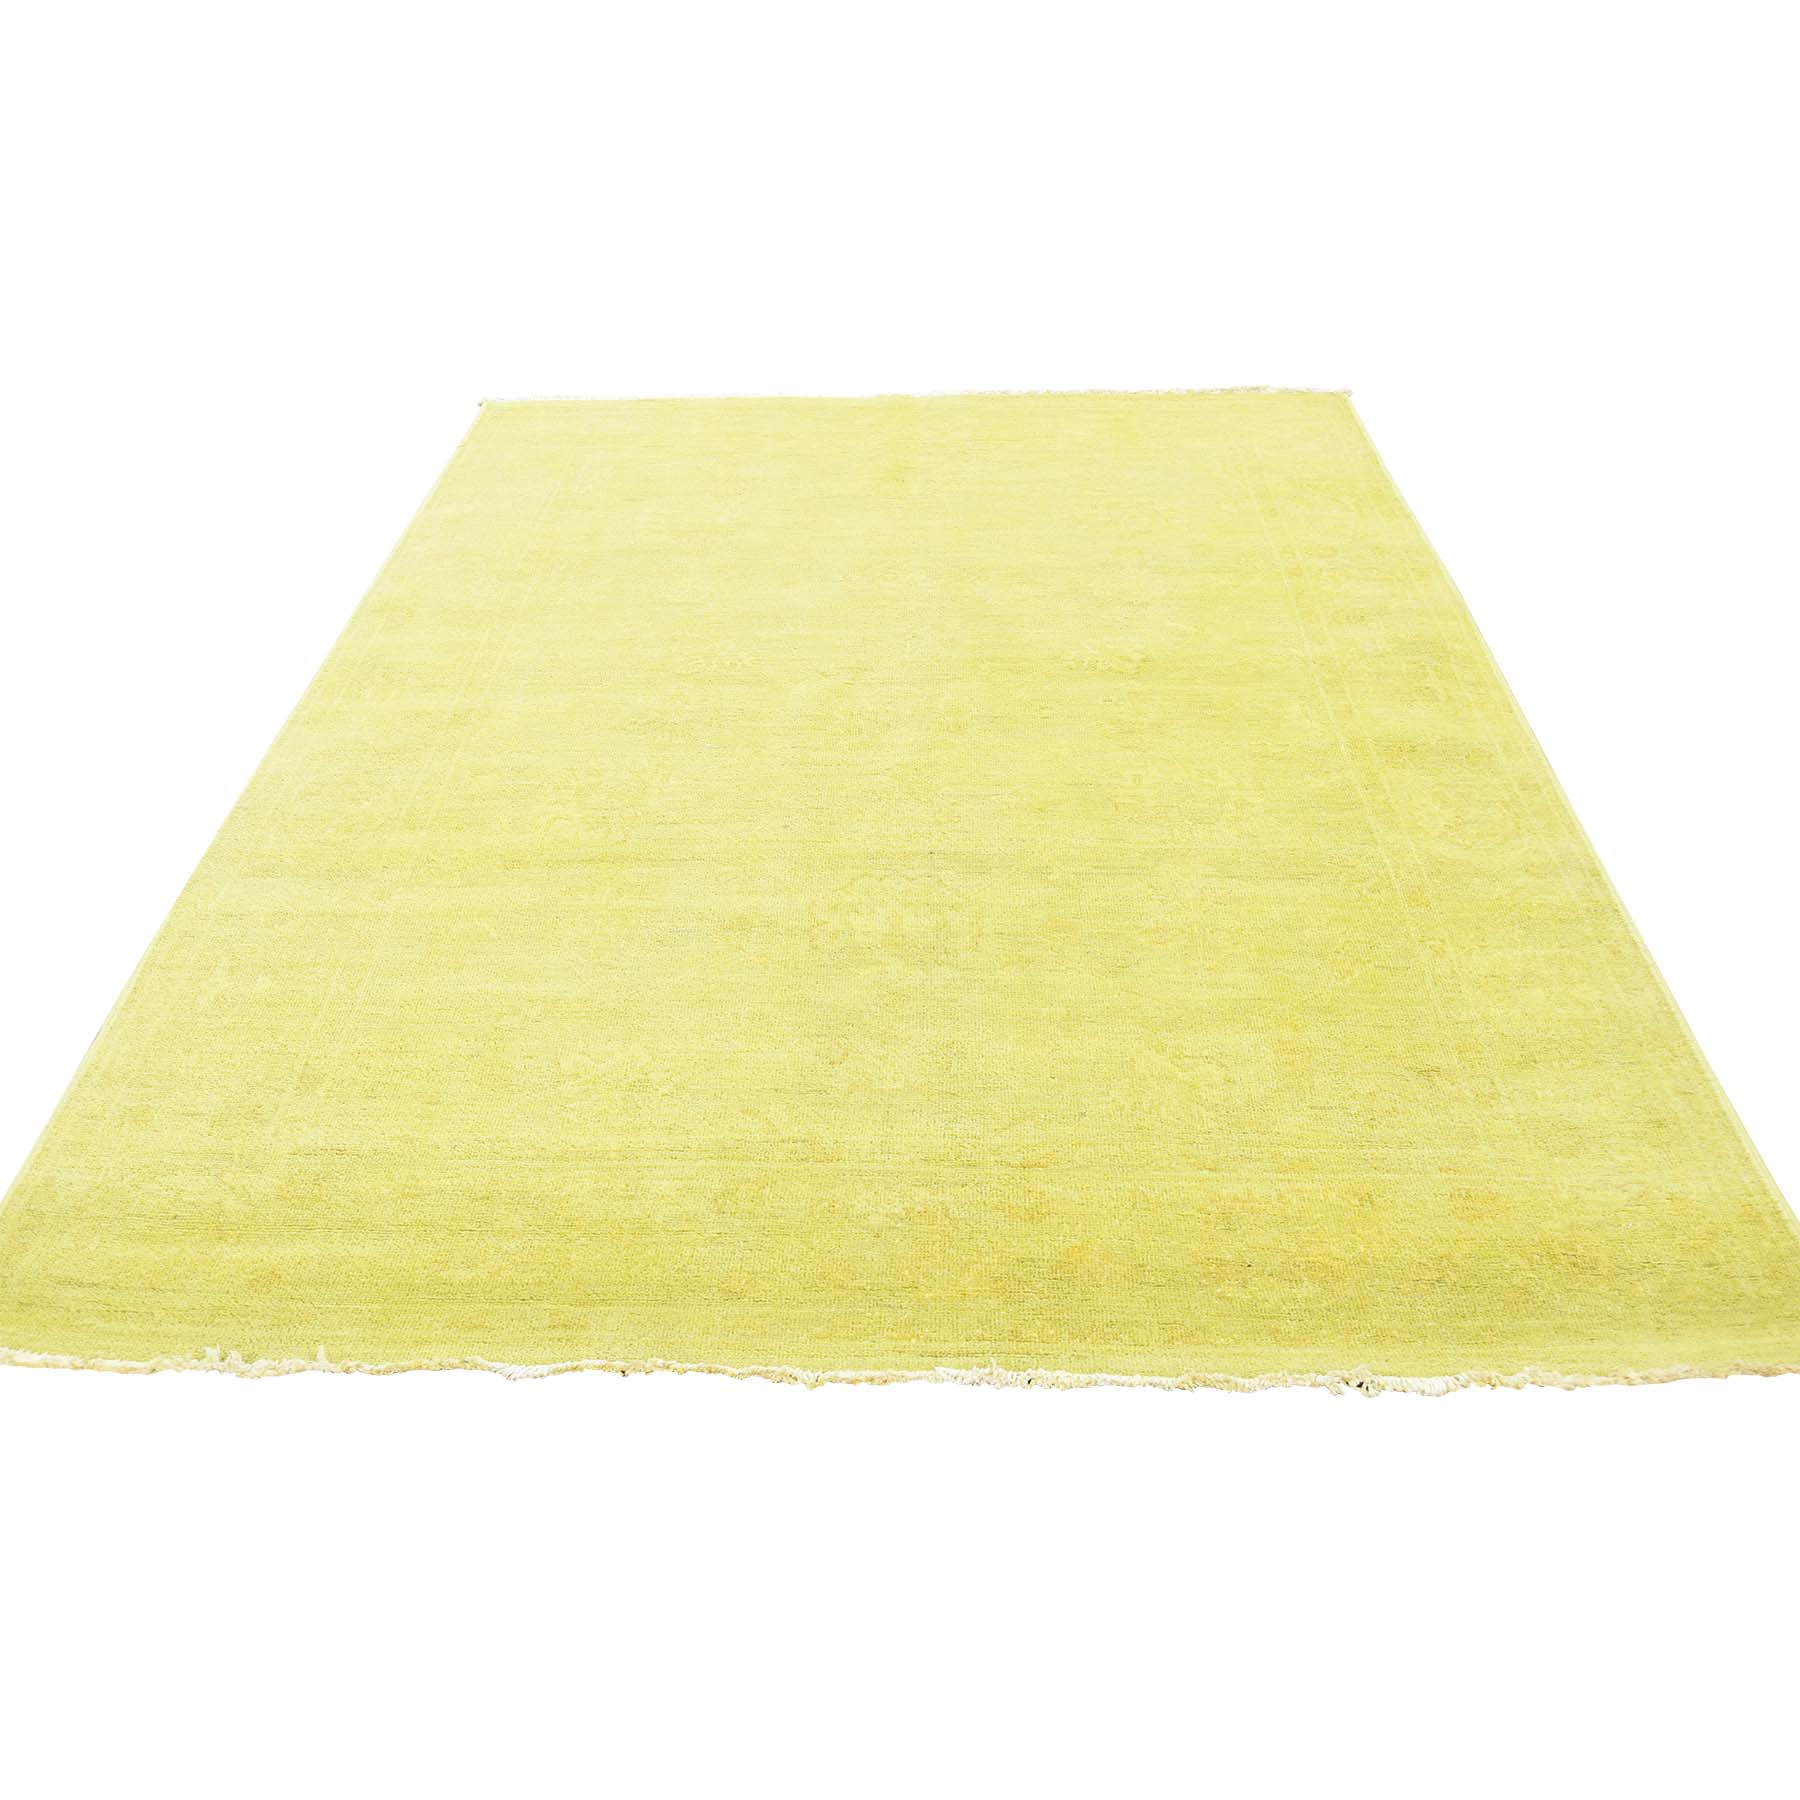 Fetneh Collection And Vintage Overdyed Collection Hand Knotted Yellow Rug No: 181422